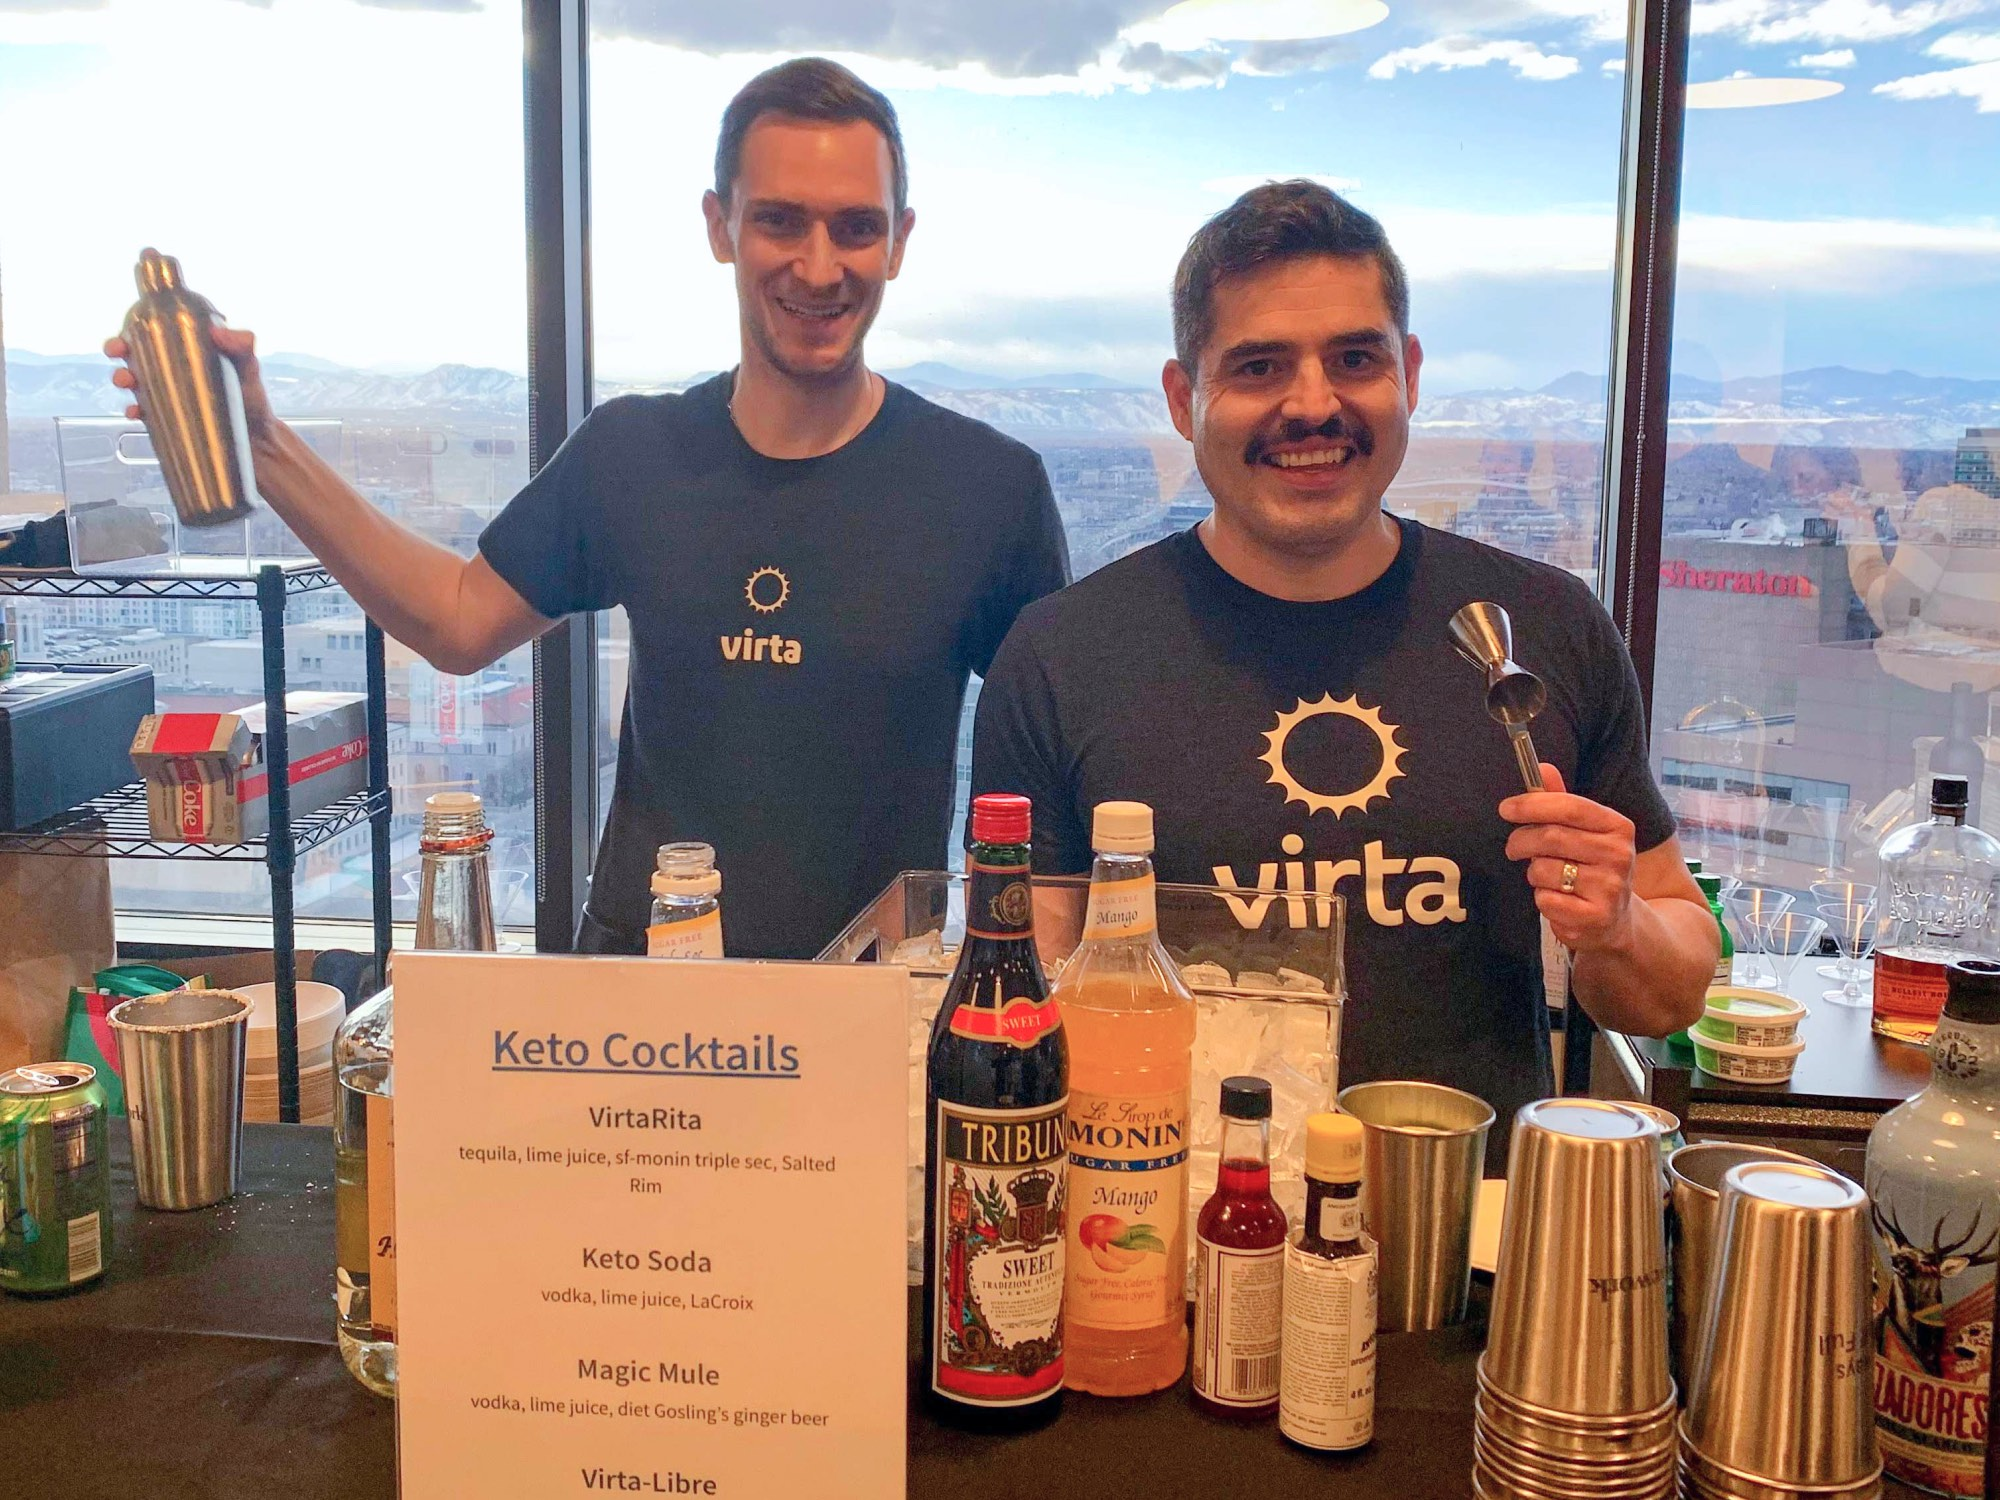 Two Virtans mixing Virta themed cocktails during an office happy hour